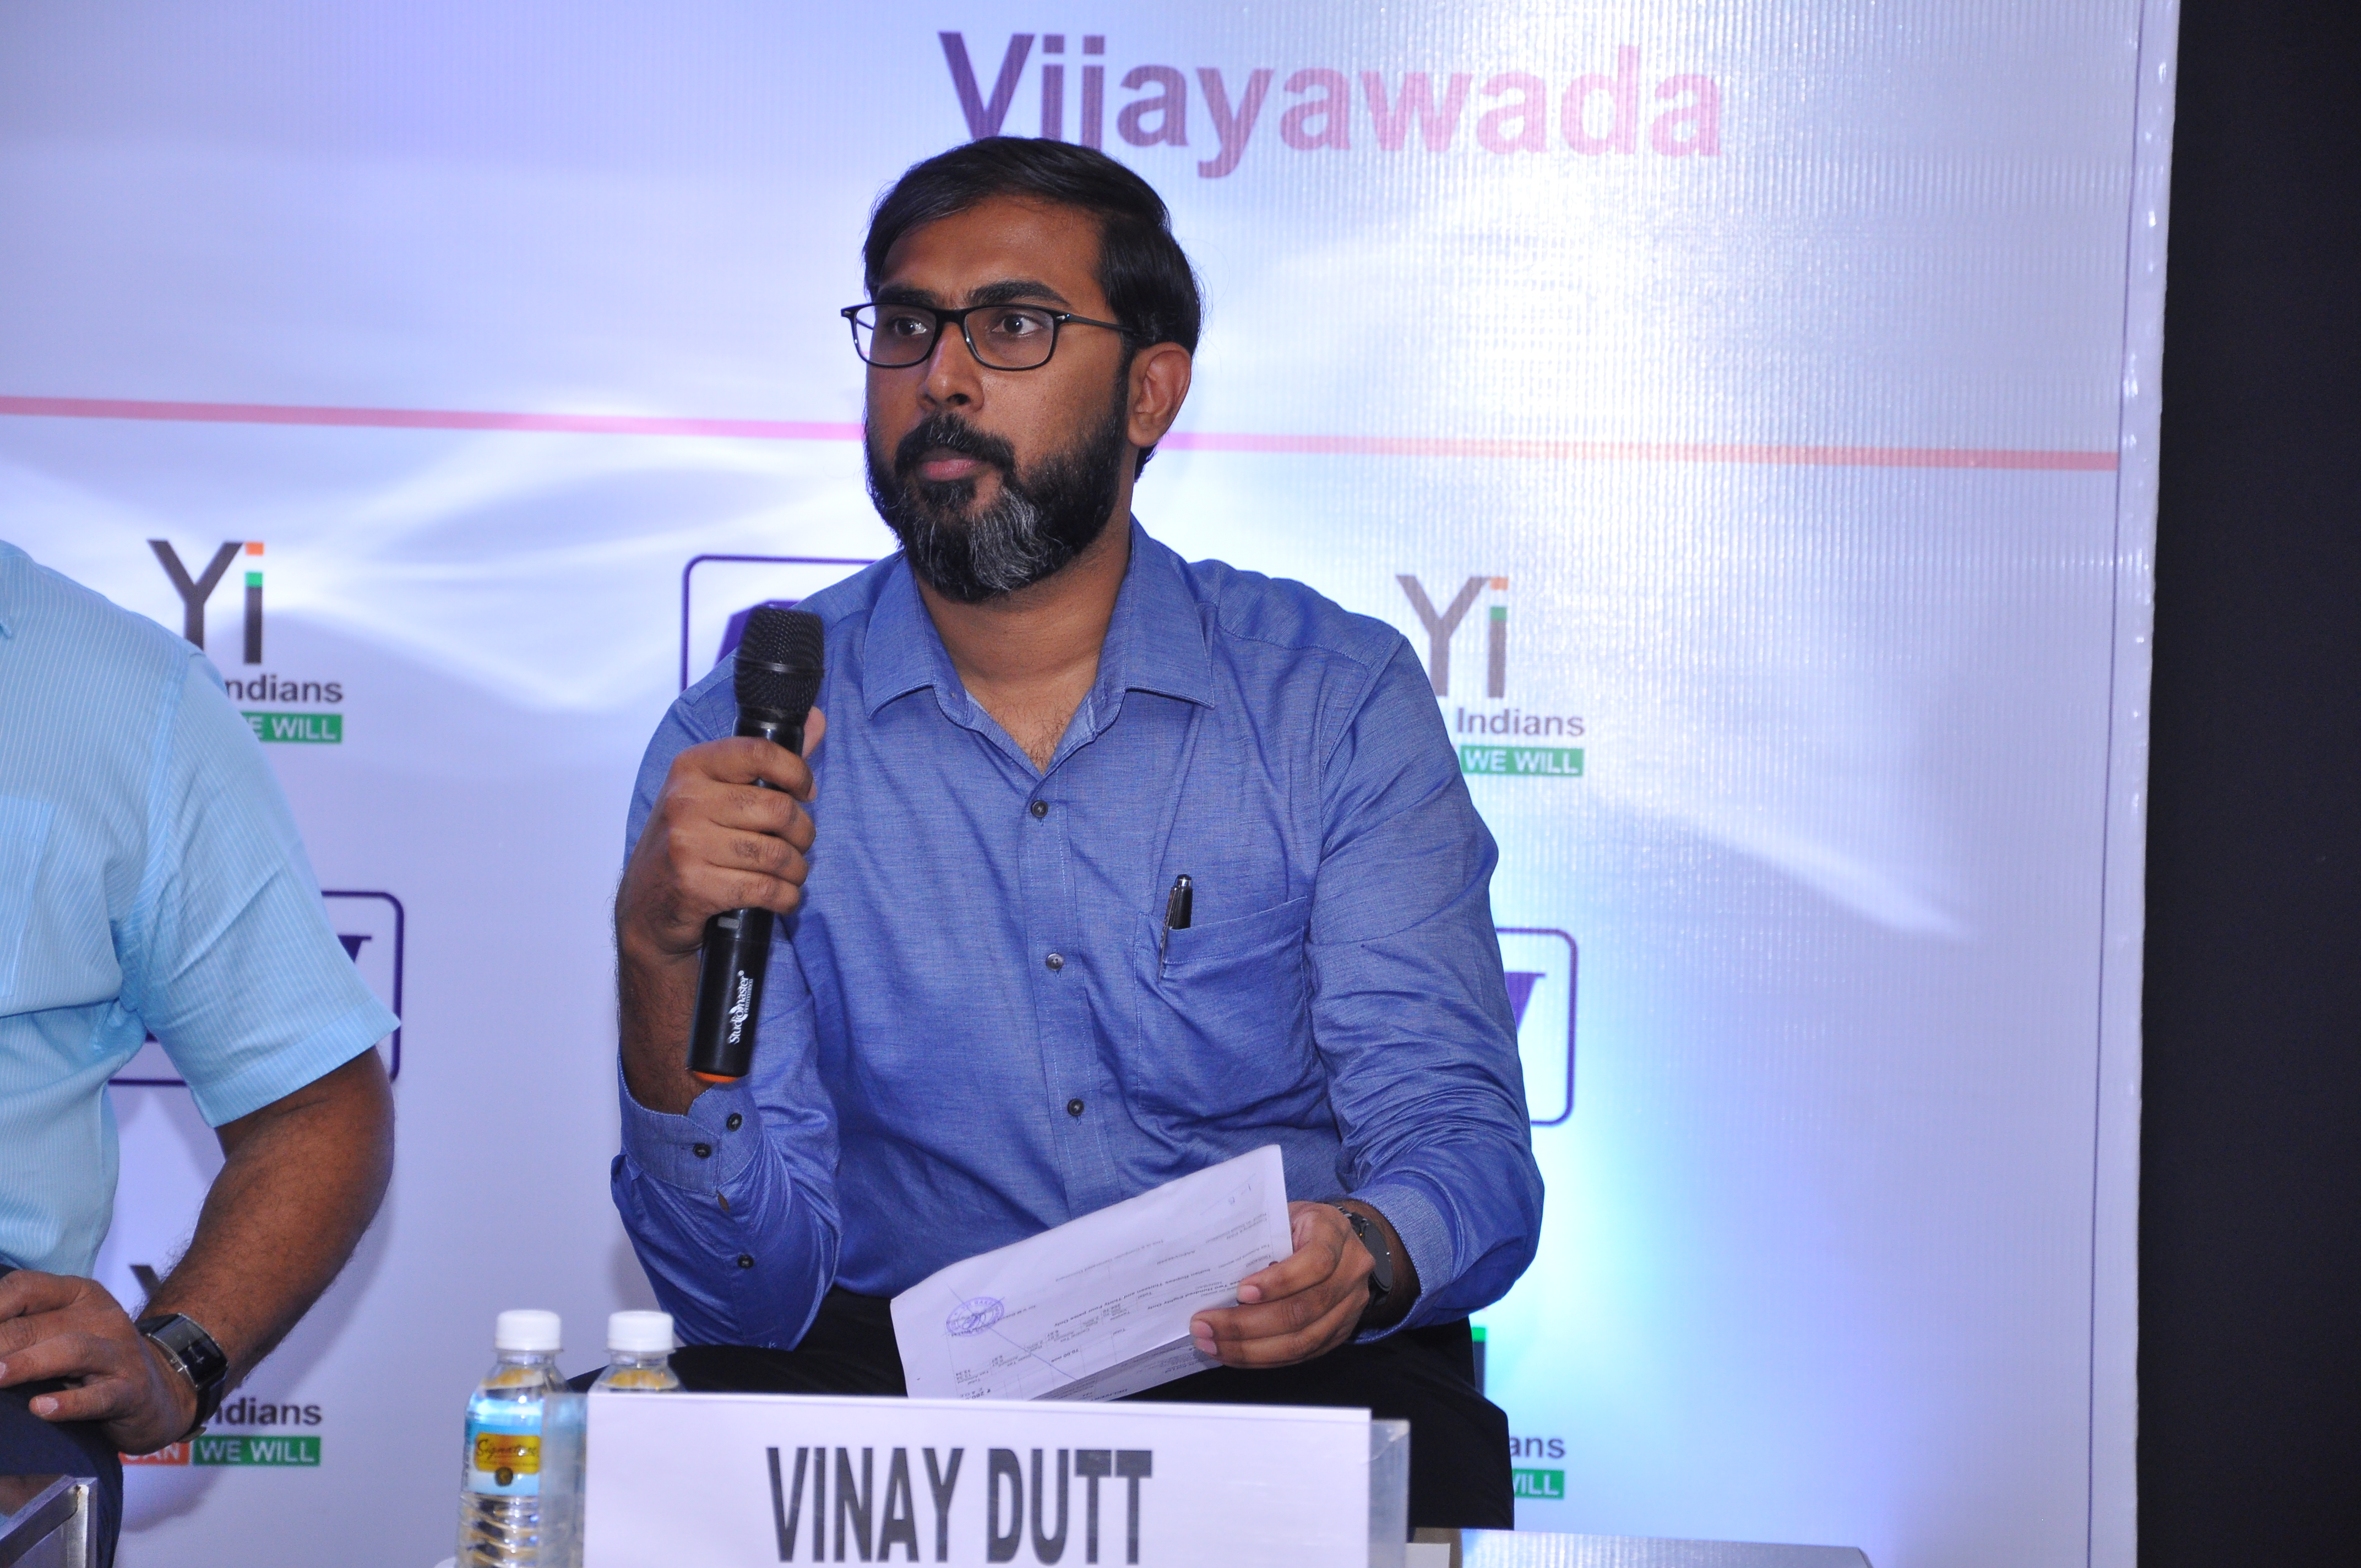 """Yi Amaravati Annual Session of Young Indians - Amaravati Chapter & Panel Discussion on """"Engaging Youth towards building a Sustainable Amaravati"""""""